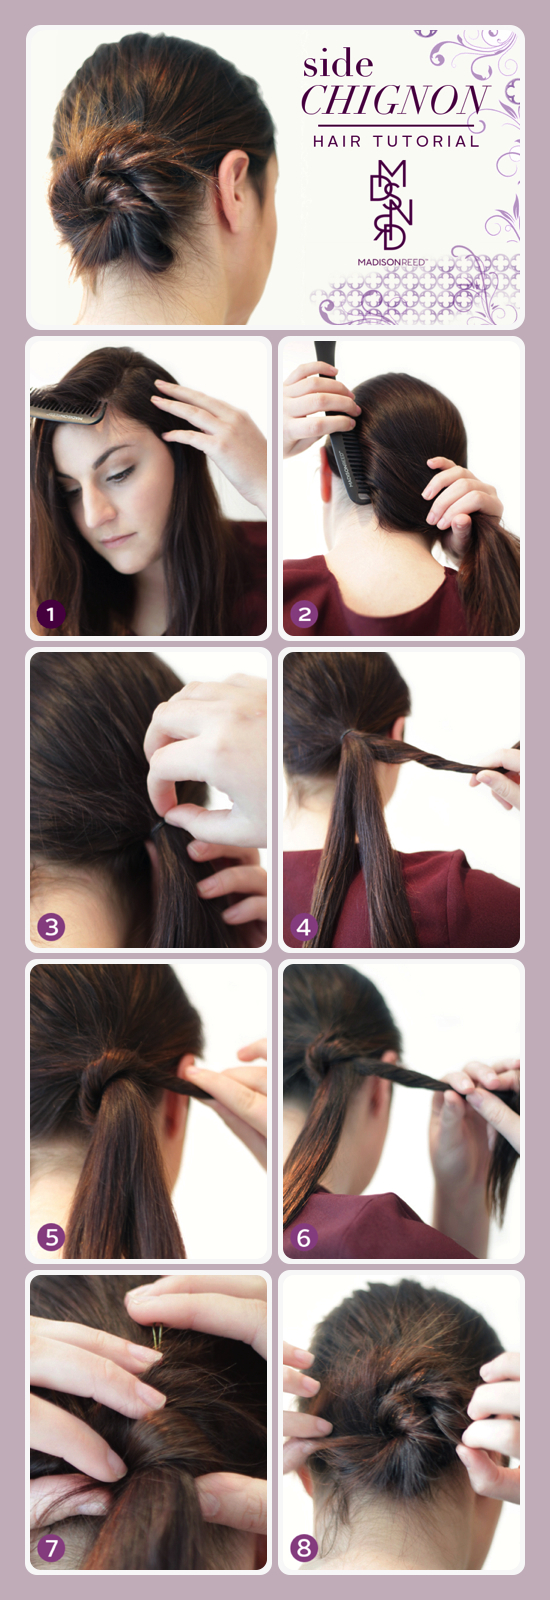 Side Chignon Tutorial